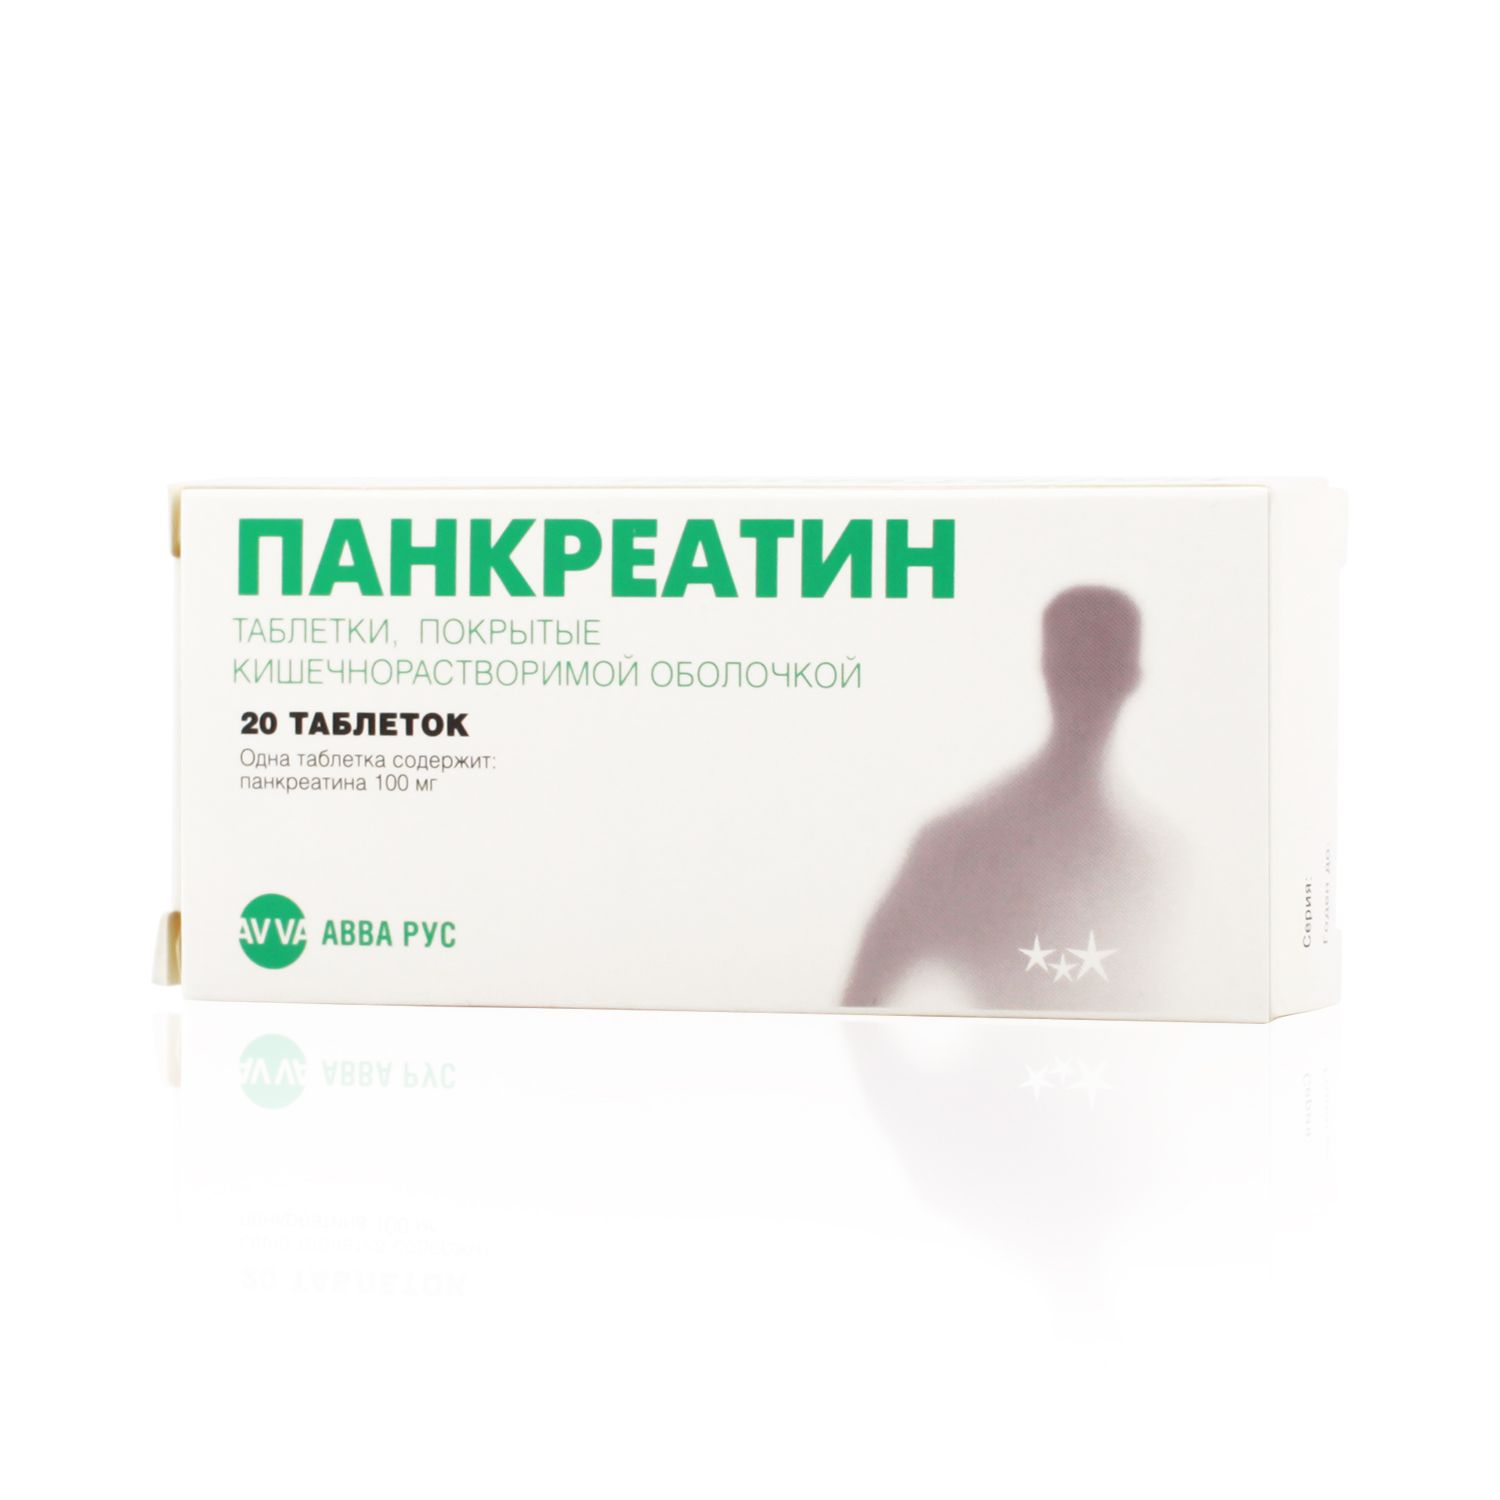 pancreatin-10000-IU-coated-tablets-n20